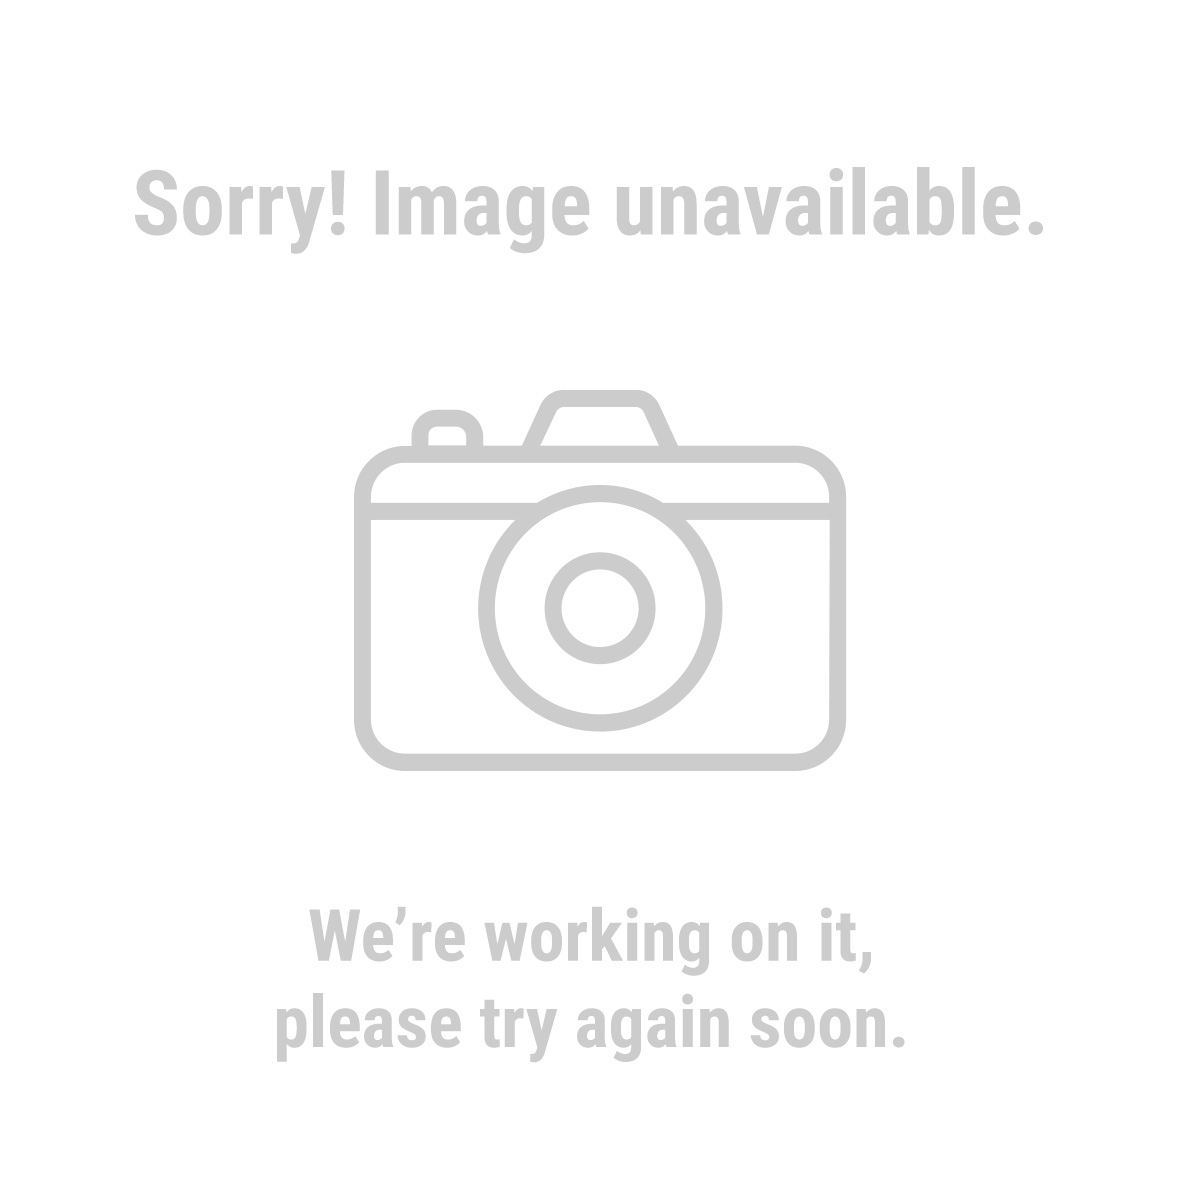 63410 1 in. x 20 ft. PVC Suction Hose